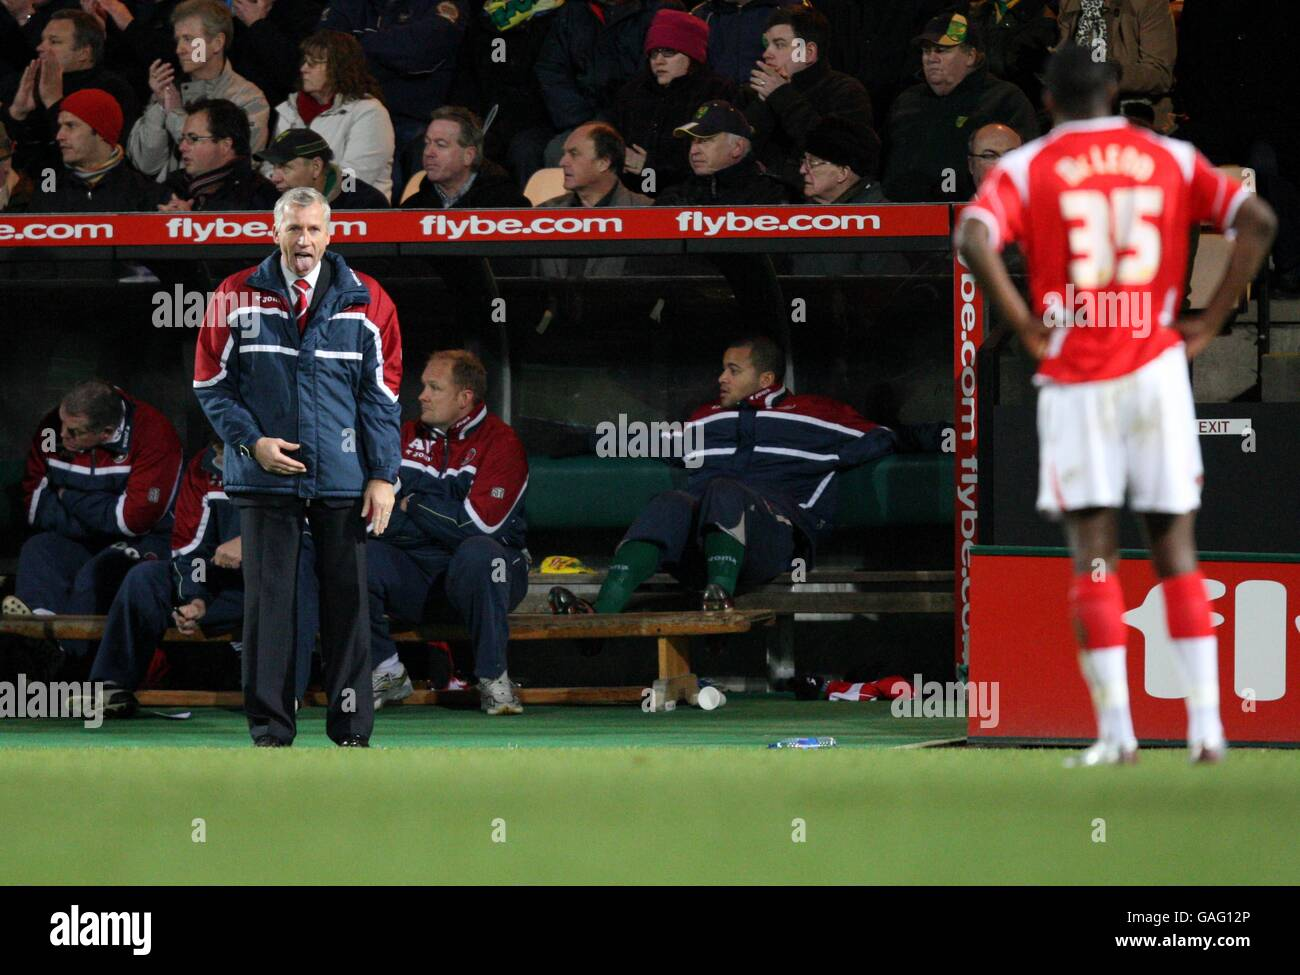 Soccer - Coca-Cola Football League Championship - Norwich City v Charlton Athletic - Carrow Road - Stock Image